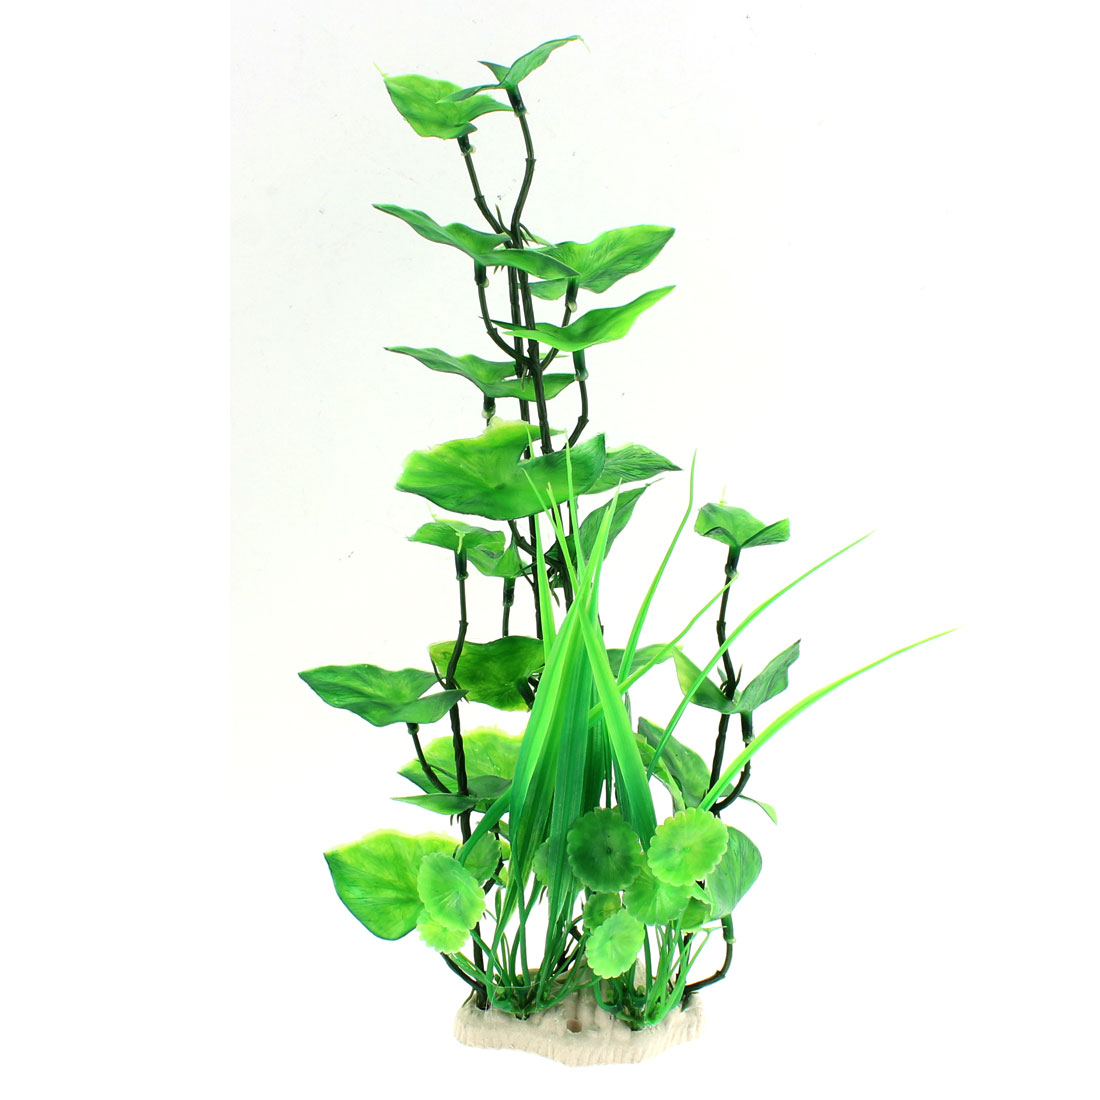 Aquarium Plastic Artificial Landscaping Plant Adornment Green 37 x 13cm